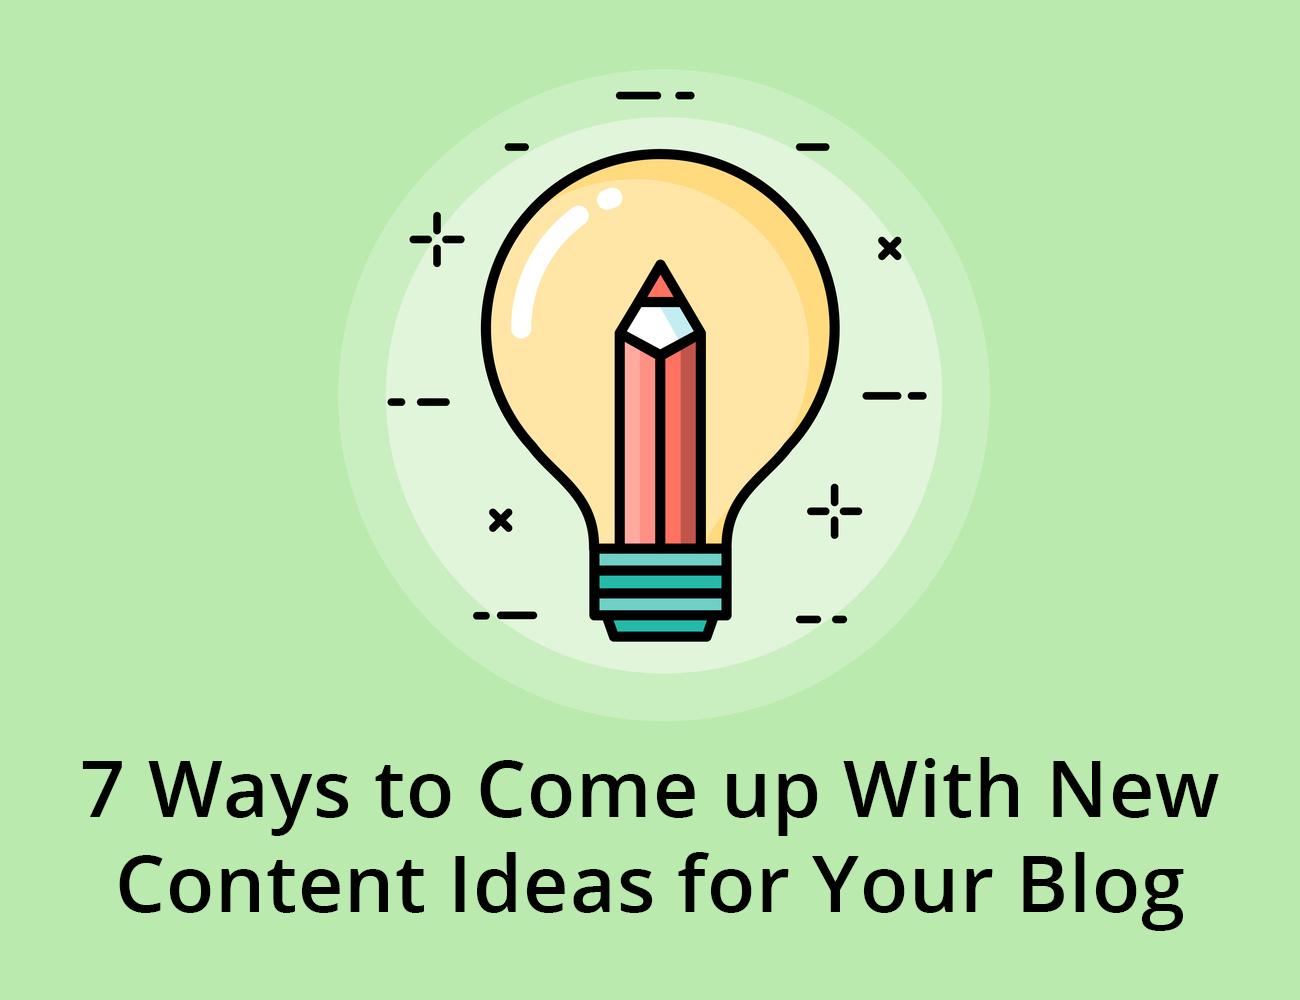 7 Ways to Come up With New Content Ideas for Your Blog